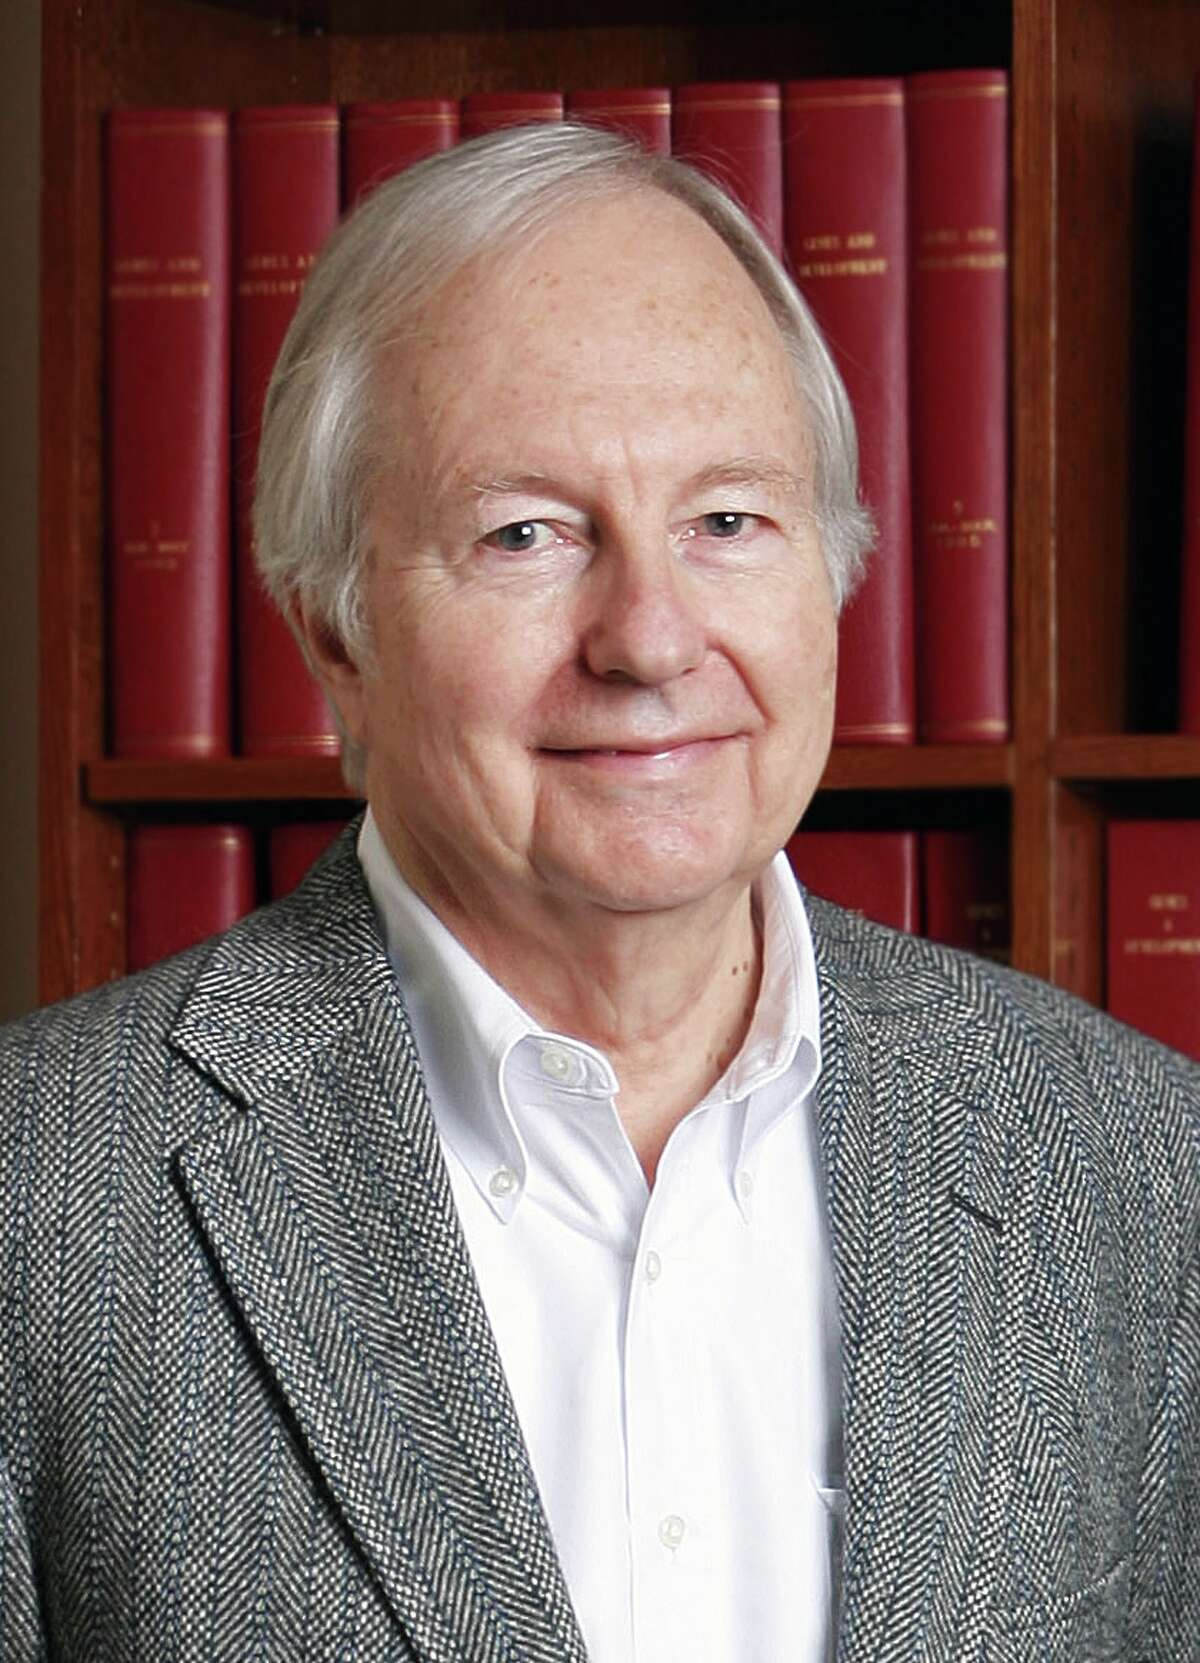 Dr. James E. Darnell Jr., who is considered the ?father? of RNA processing and cytokine signaling, and is the 2012 winner of the Albany Medical Center Prize.